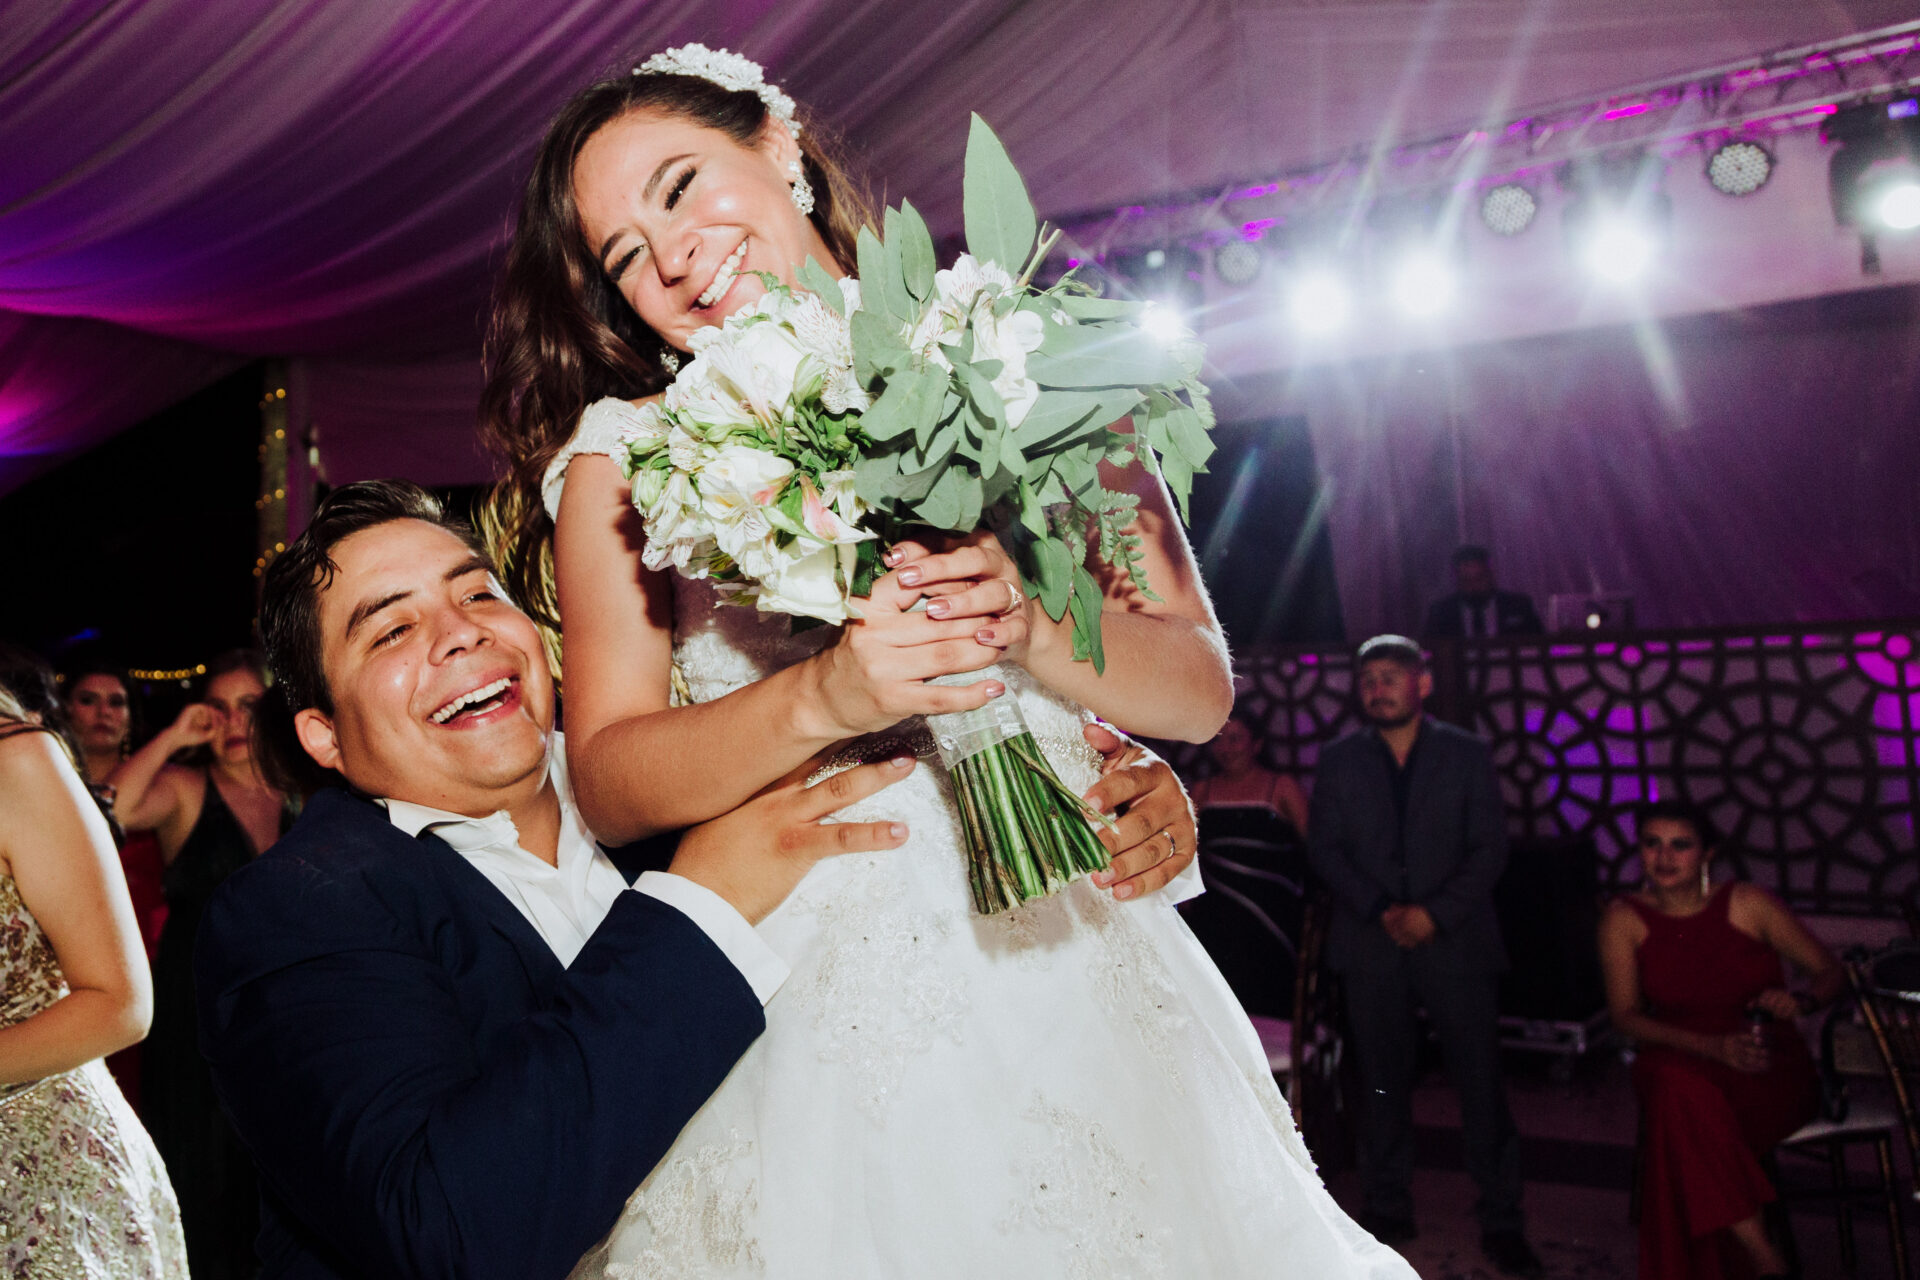 javier_noriega_fotografo_bodas_torreon_coahuila_zacatecas_wedding_photographer65a